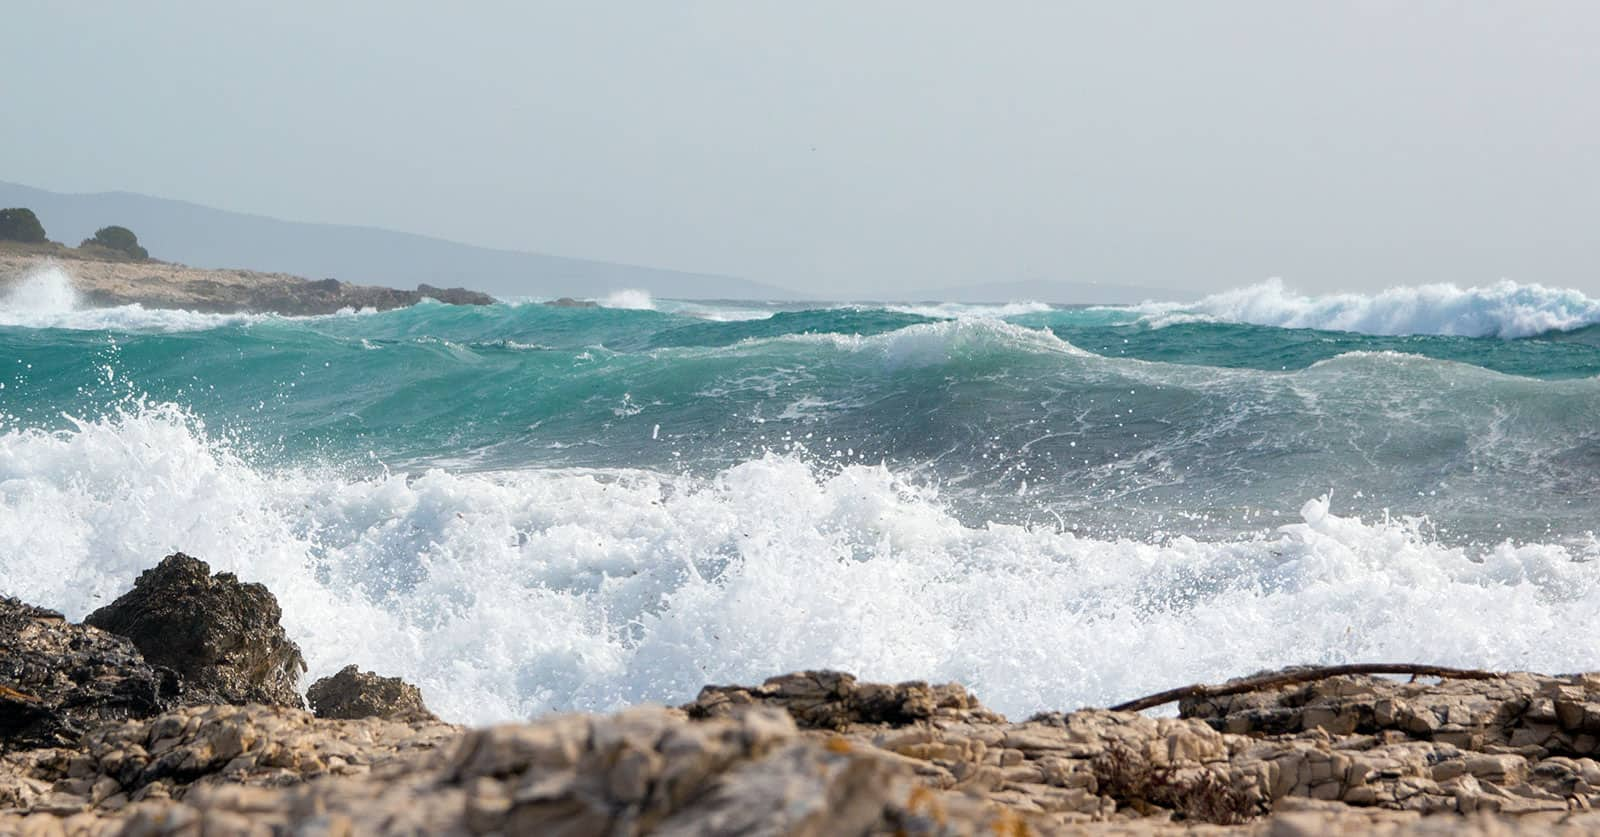 Looking around the corner the waves presented themselves in all the 1.5m glory :).